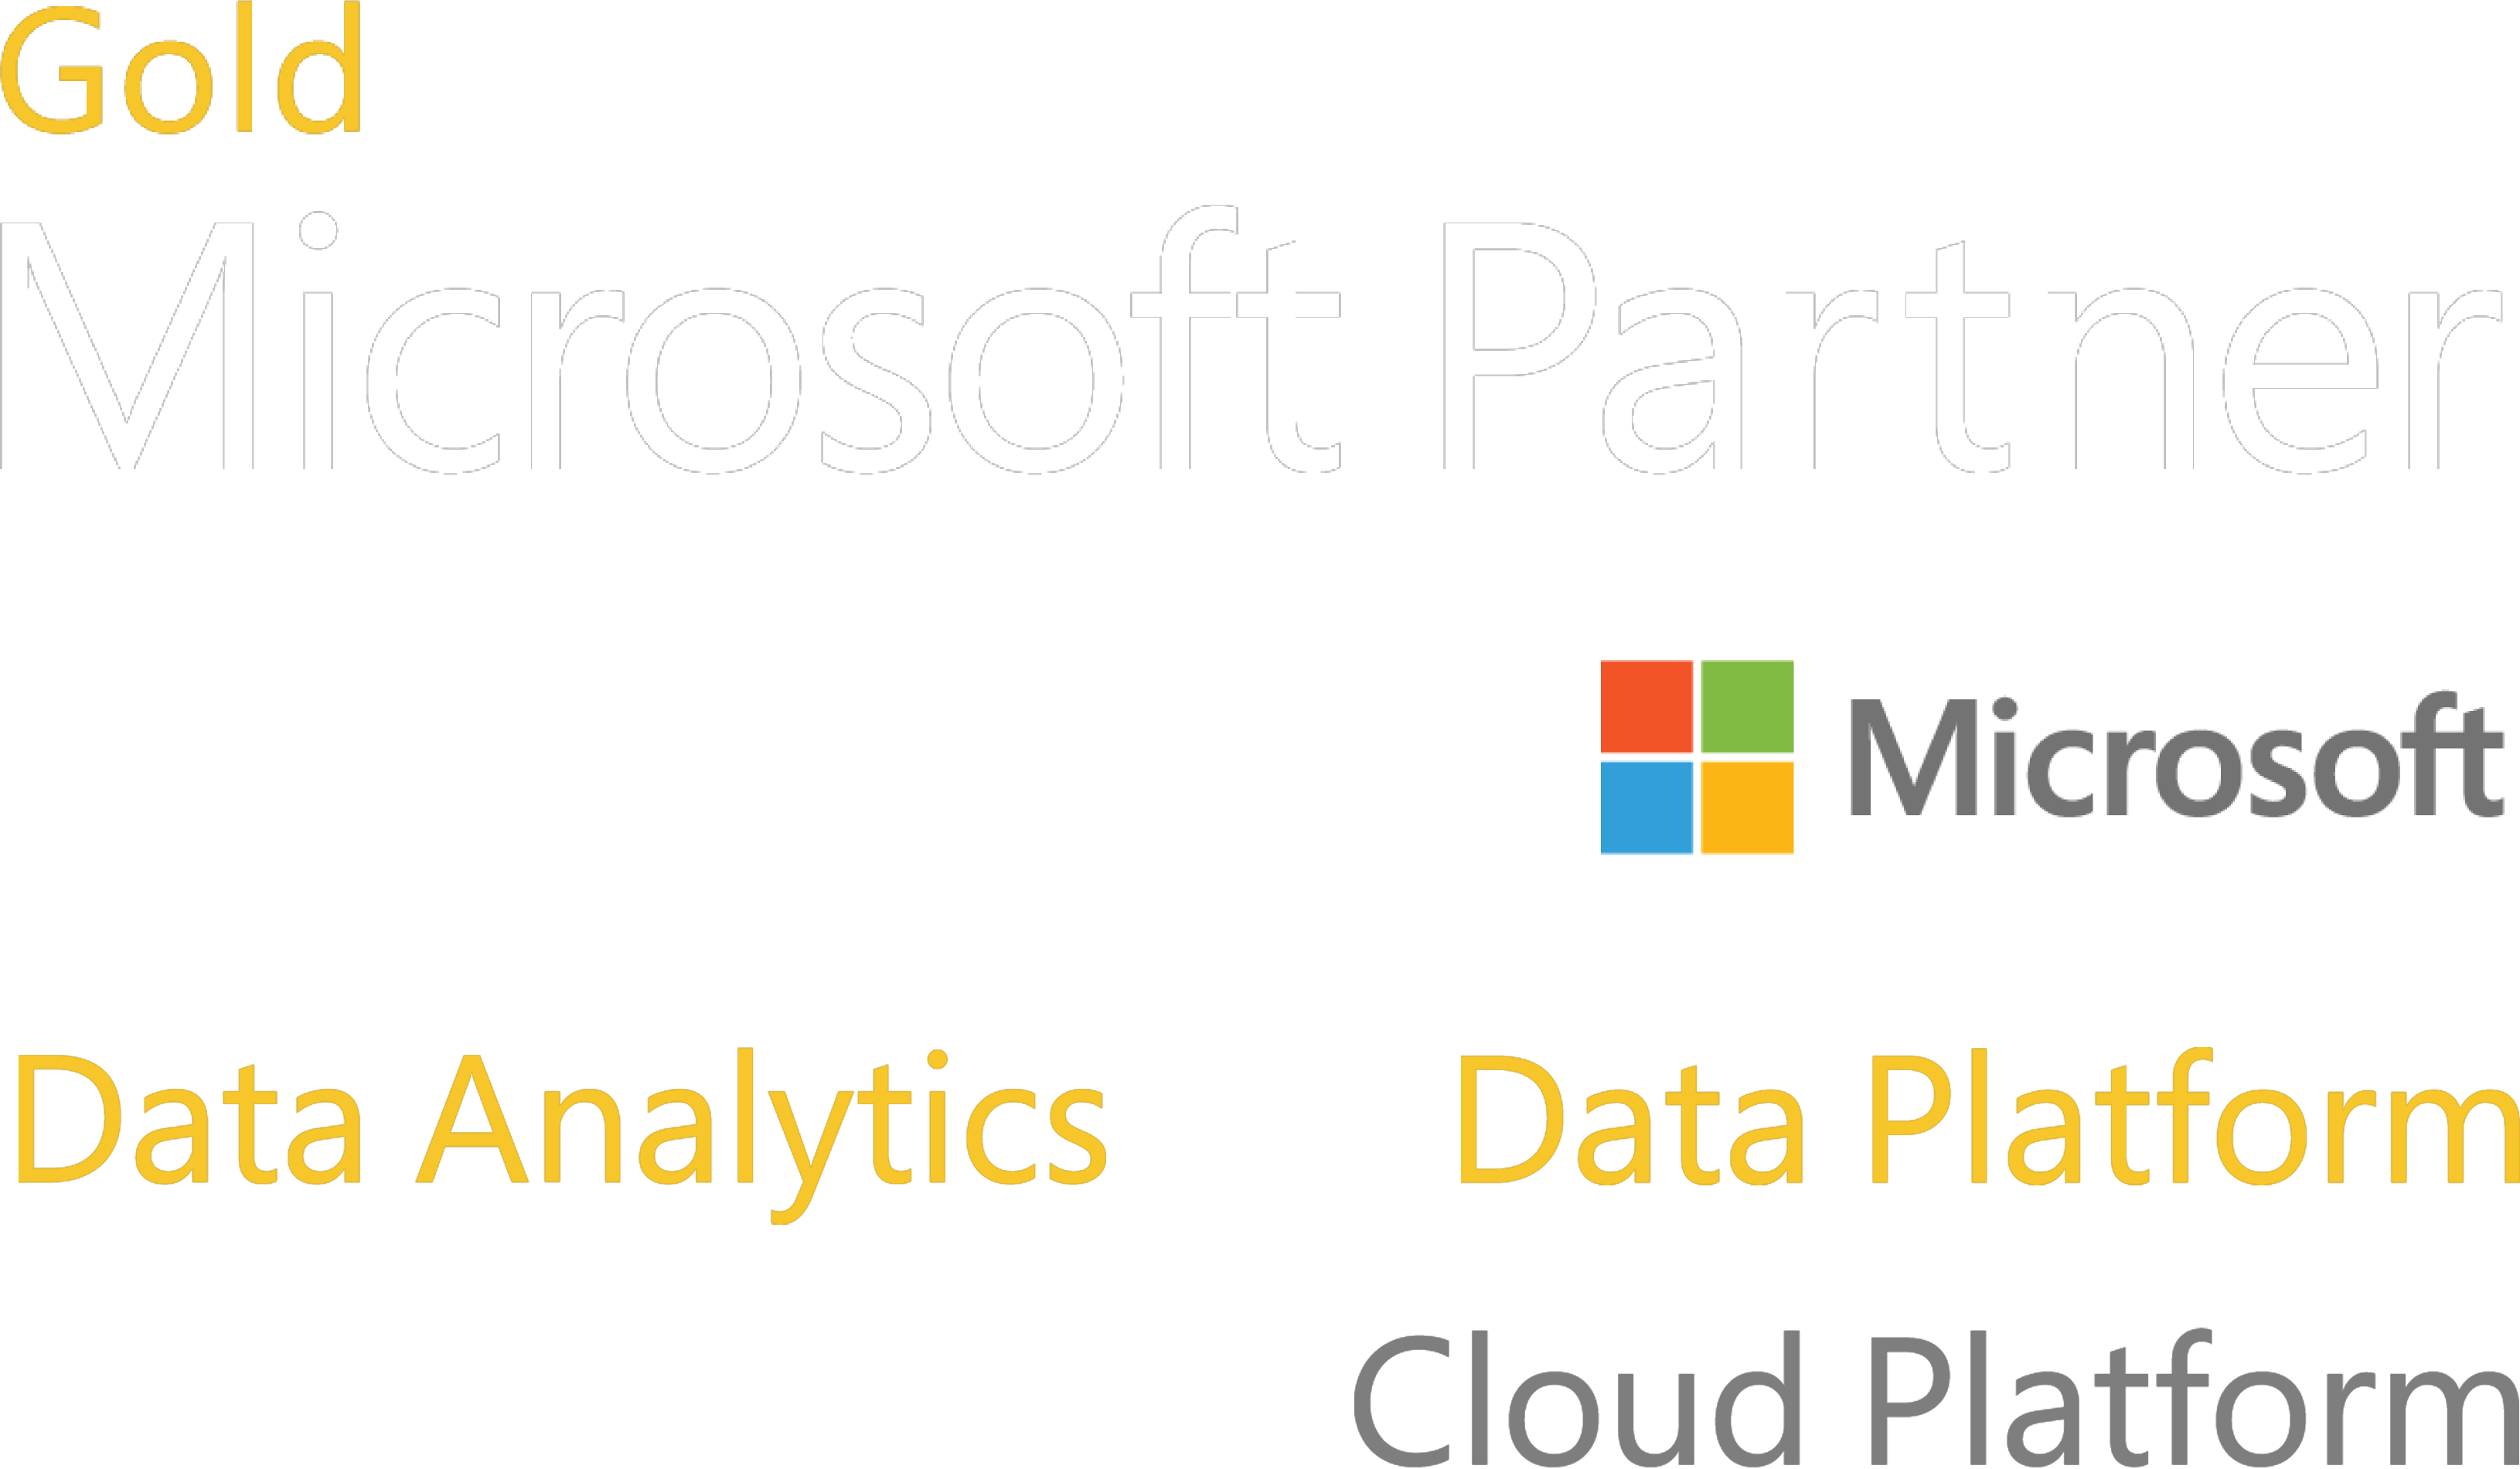 Microsoft Gold Partner - Data Analytics and Data Plataform and Silver Cloud Platform